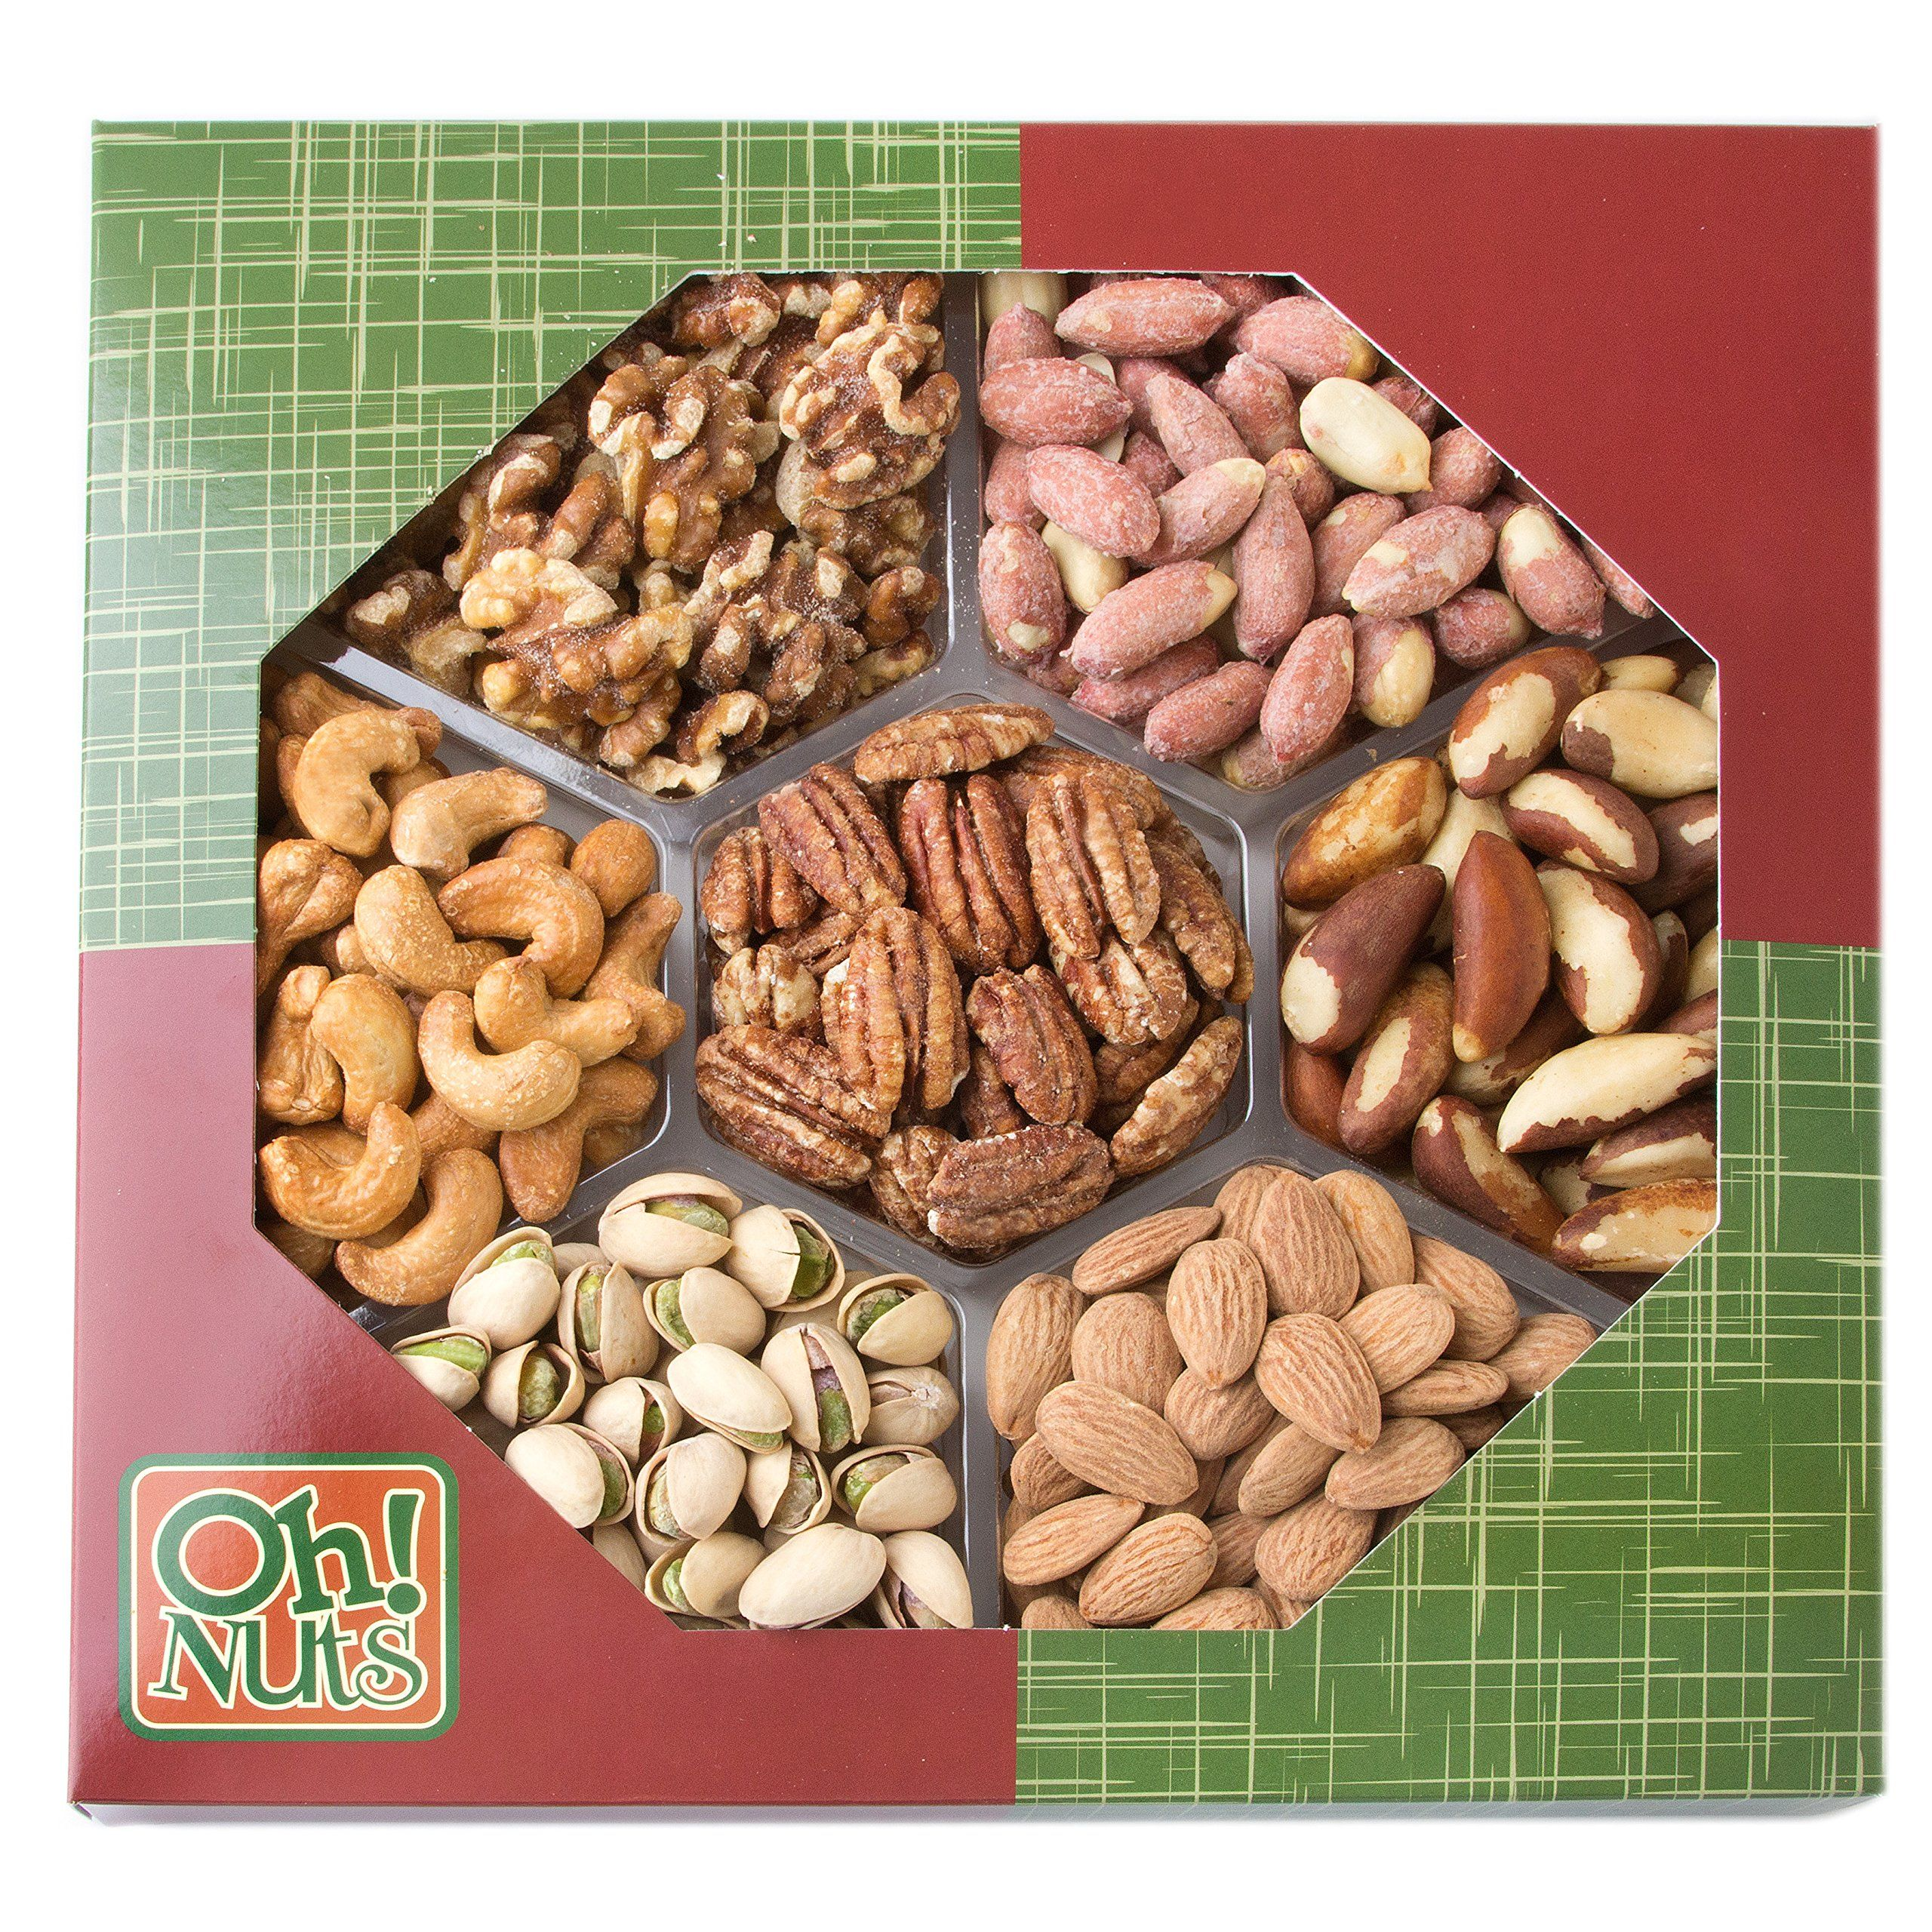 Healthy Snacks Dry Roasted Nuts Unsalted 7 Variety Food Gift No Additives No Oil No Salt Great Gift For Him Or Her Vegans Healthy Food Gifts Variety Food Food